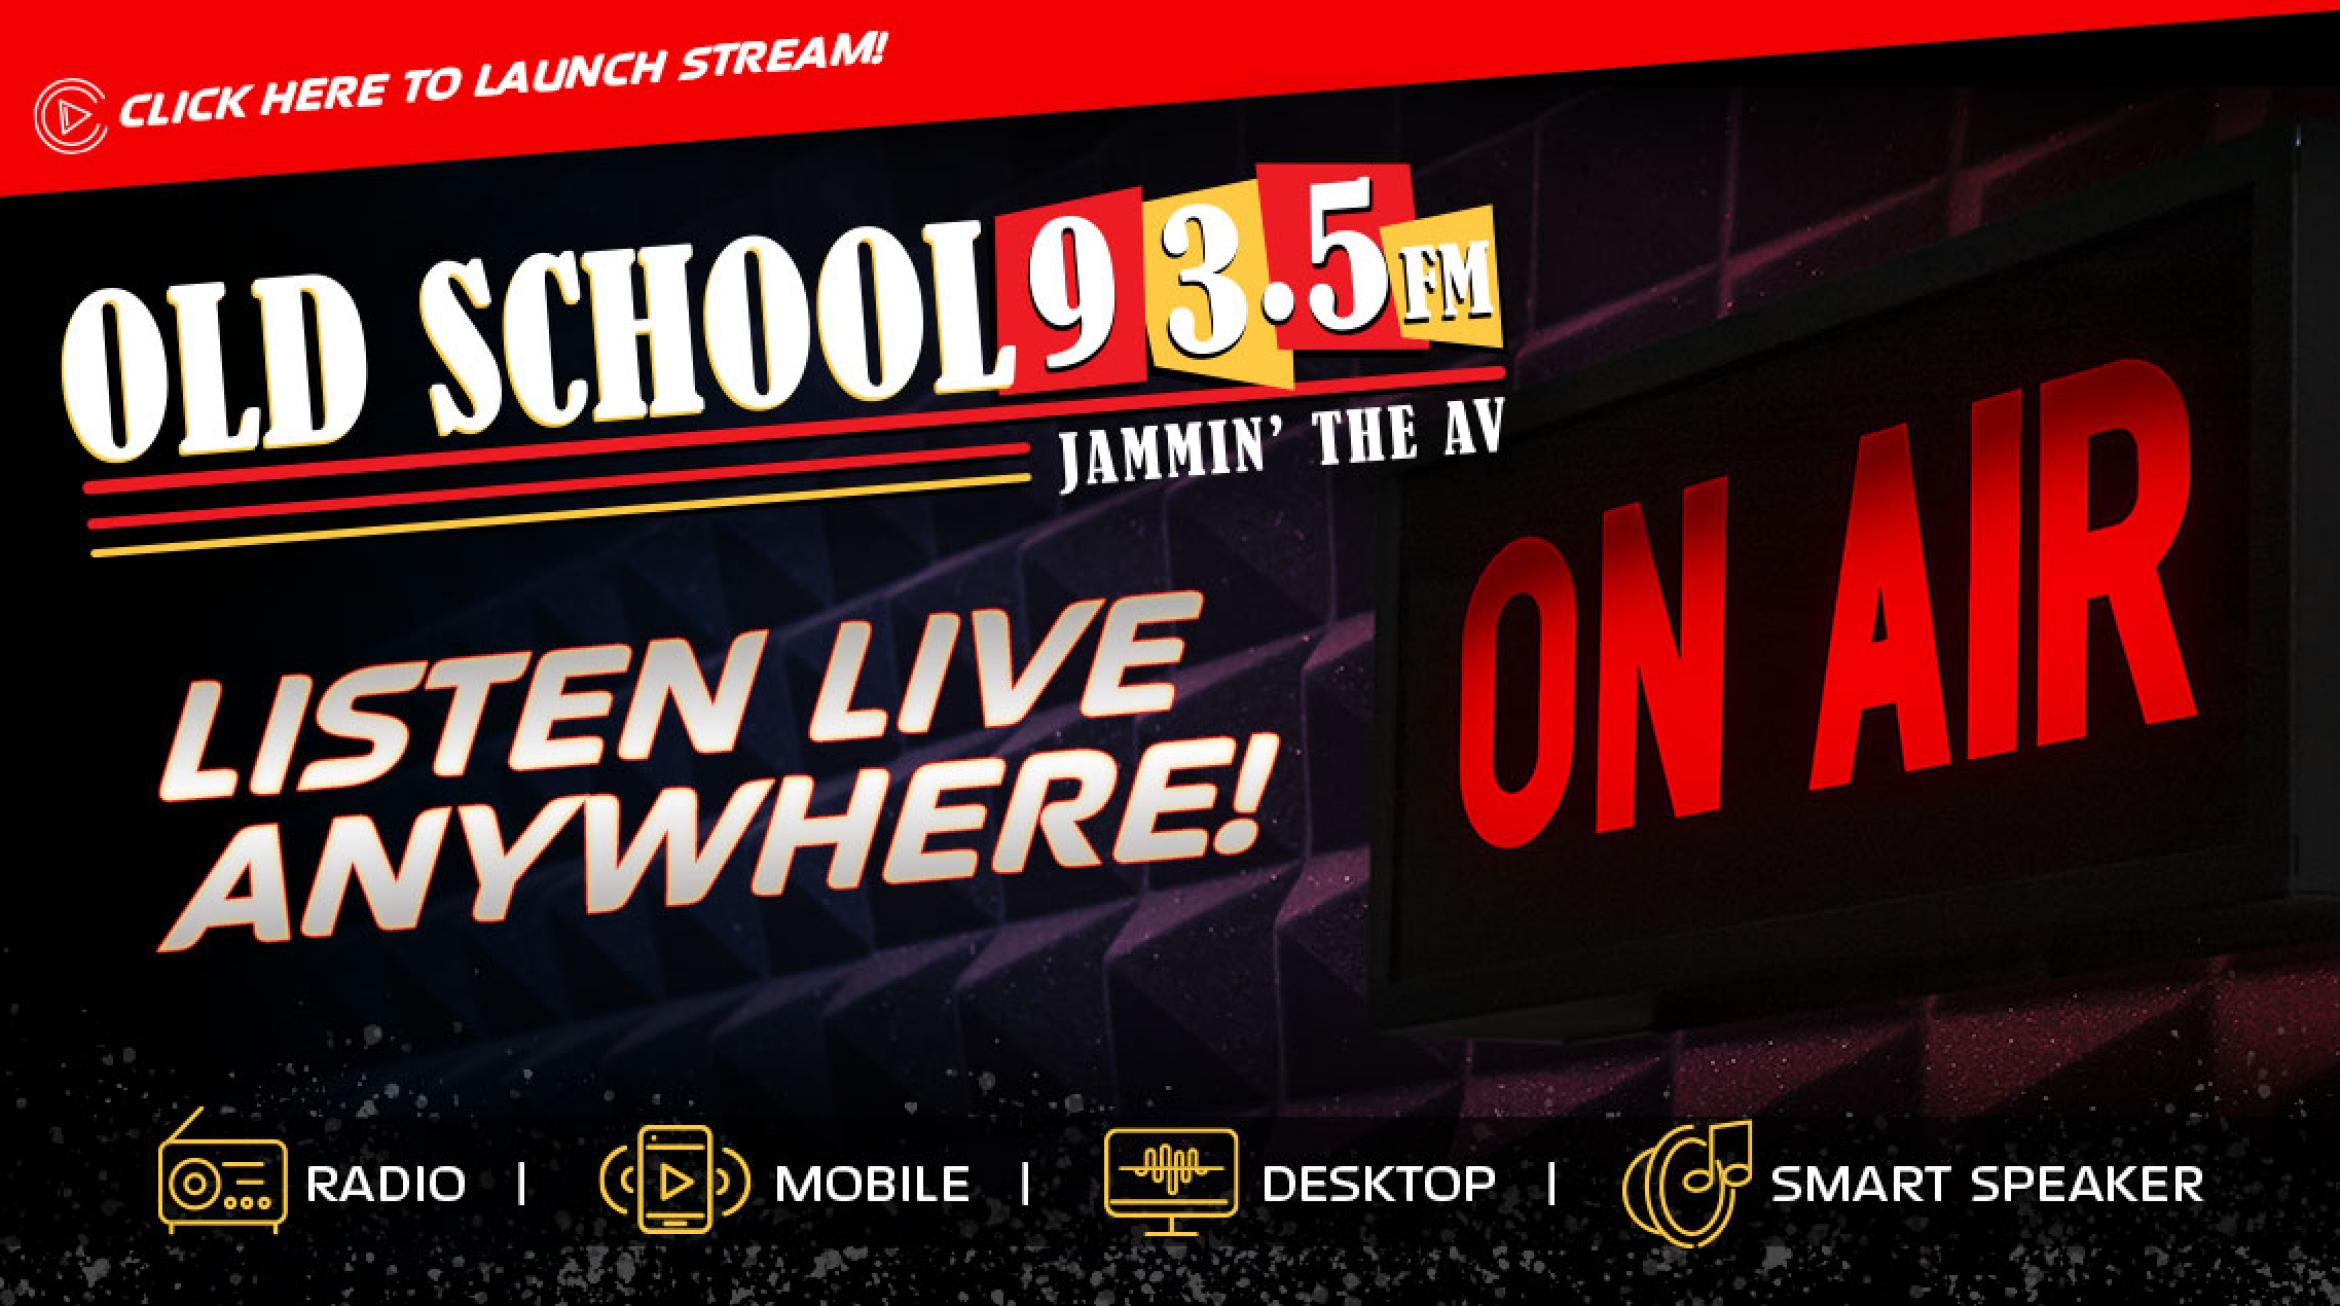 1140x635 ListenLive Anywhere Oldschool935